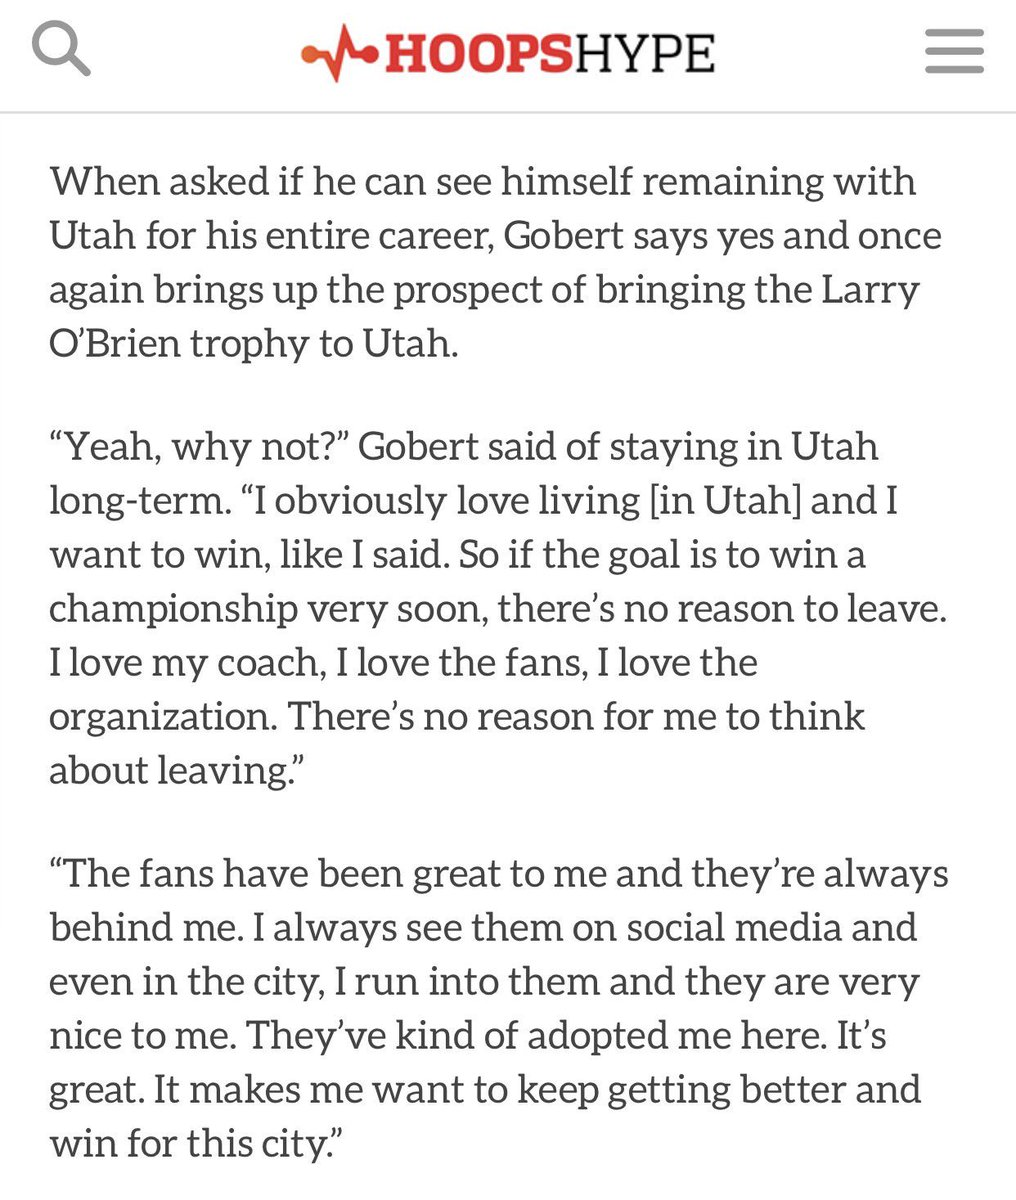 ogden aggie ogdenaggie twitter best and why he s going to own this state hoopshype com 2017 04 11 rudy gobert fly under the radar but he has his peers respect by